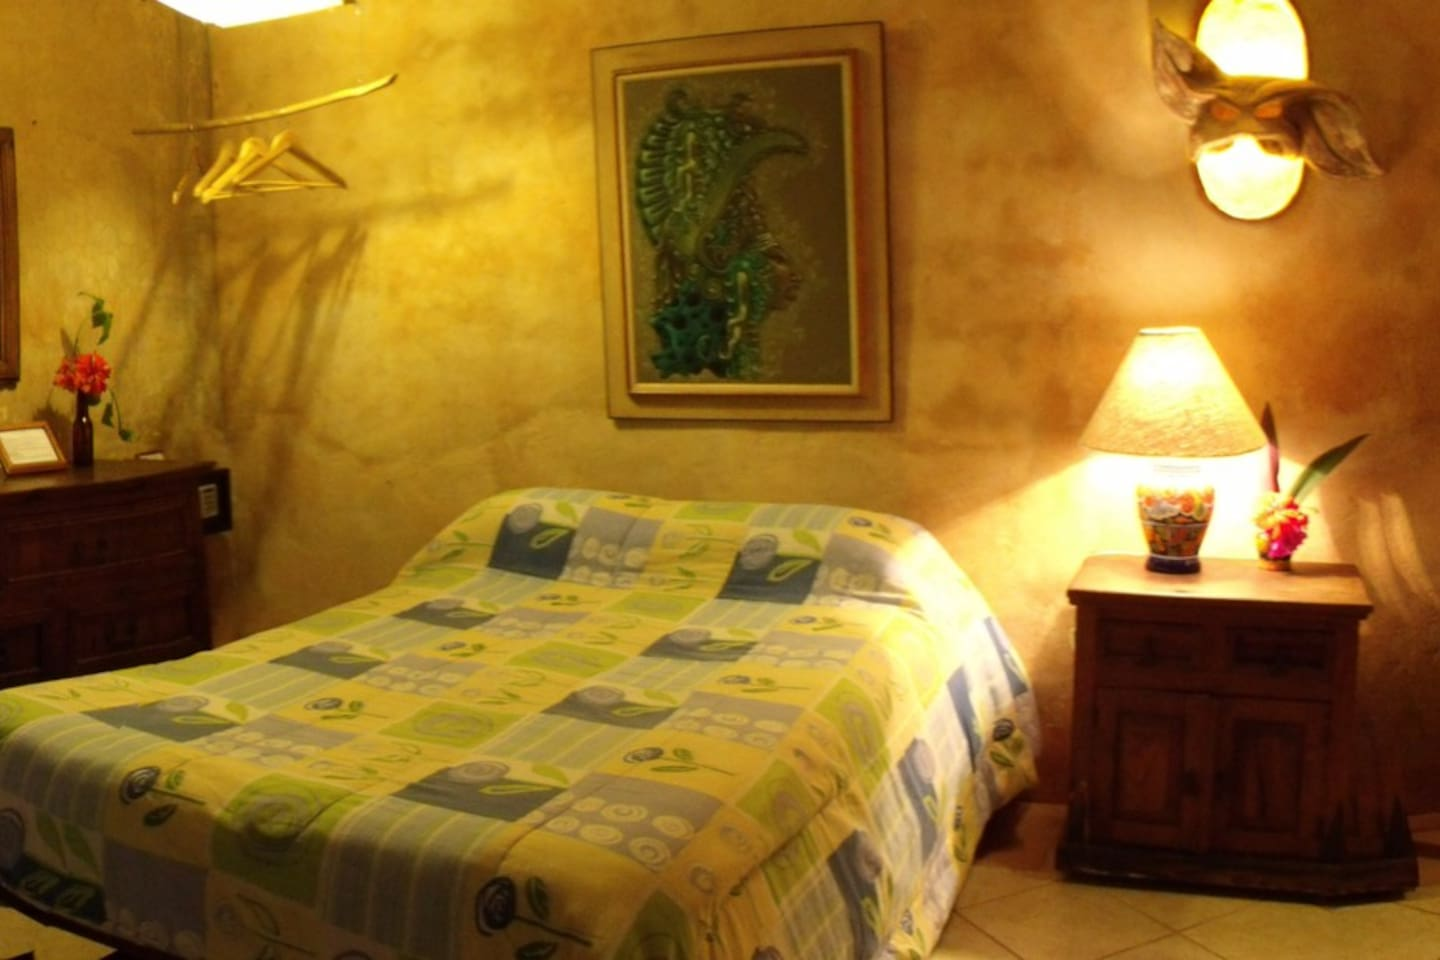 Casitas Kinsol - ww(URL HIDDEN) - Room #3 with hand made wood furniture - Comes with a full-size bed and a twin-size bed